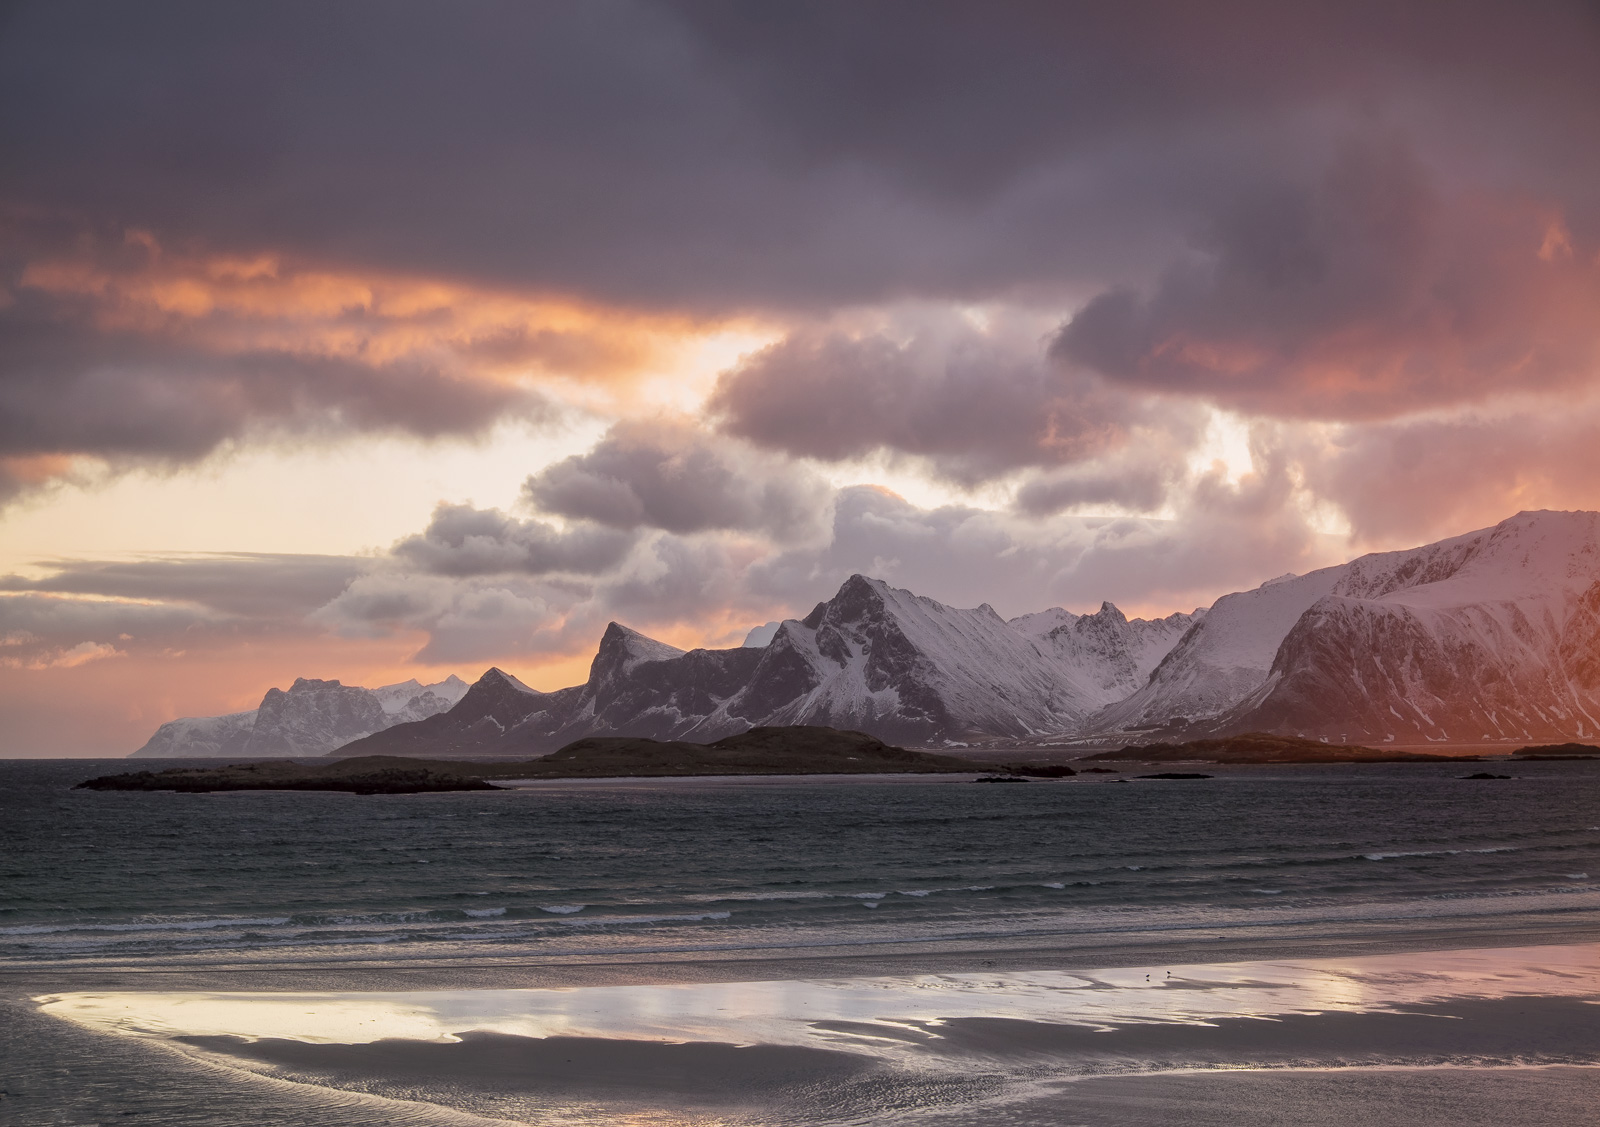 Yttresand Fire, Yttresand, Lofoten, Norway, favourite, views, sand, mountains, raspberry, blue, turquoise, grey, wet, su, photo